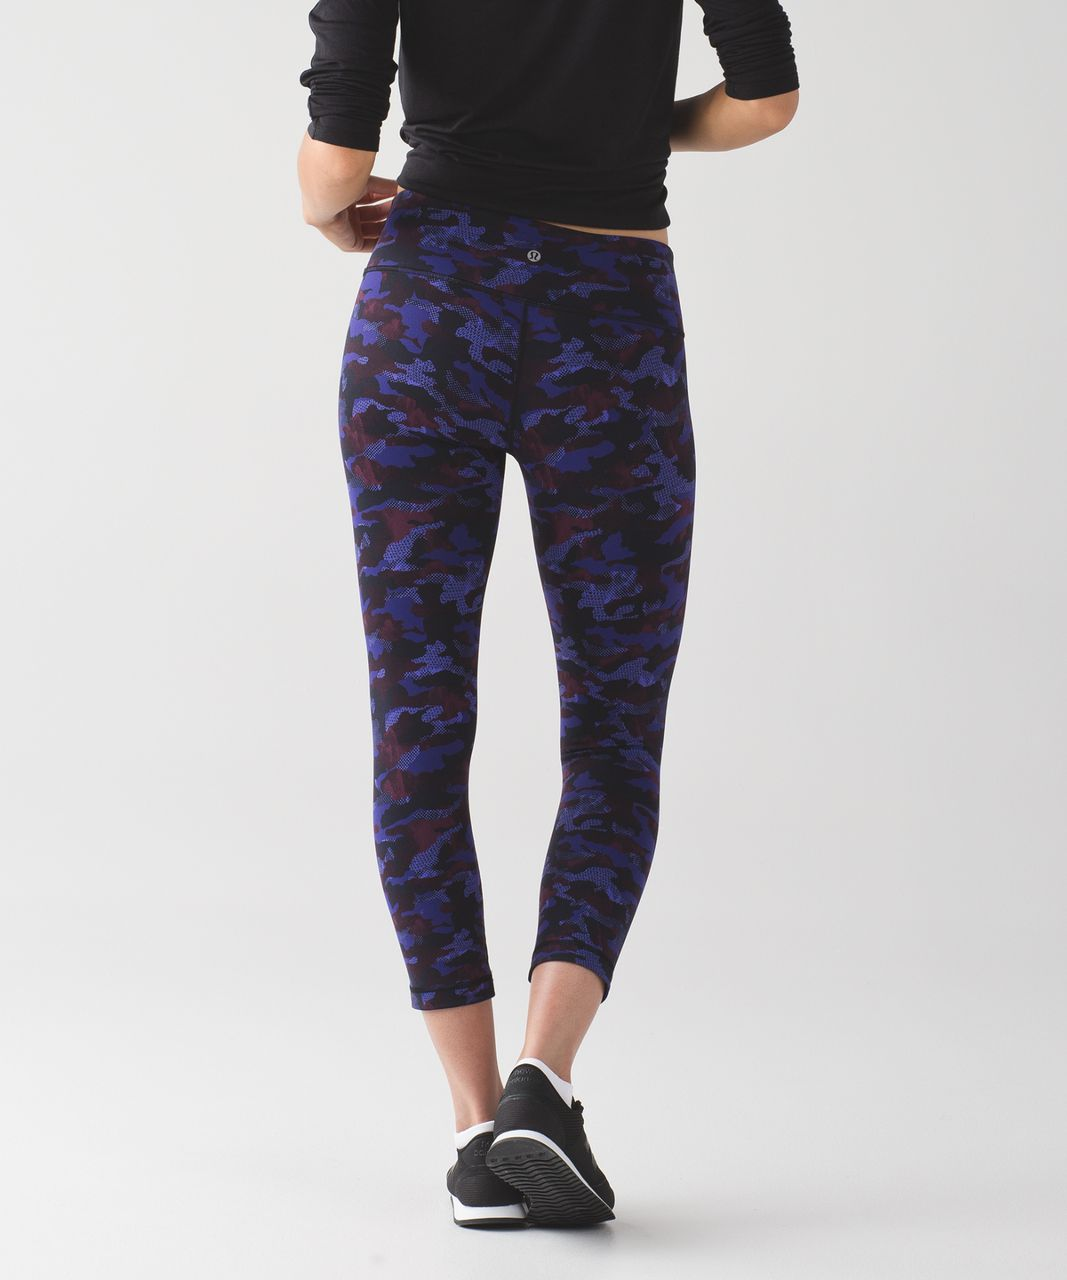 Lululemon Wunder Under Crop III - Hounds Camo Emperor Blue Black